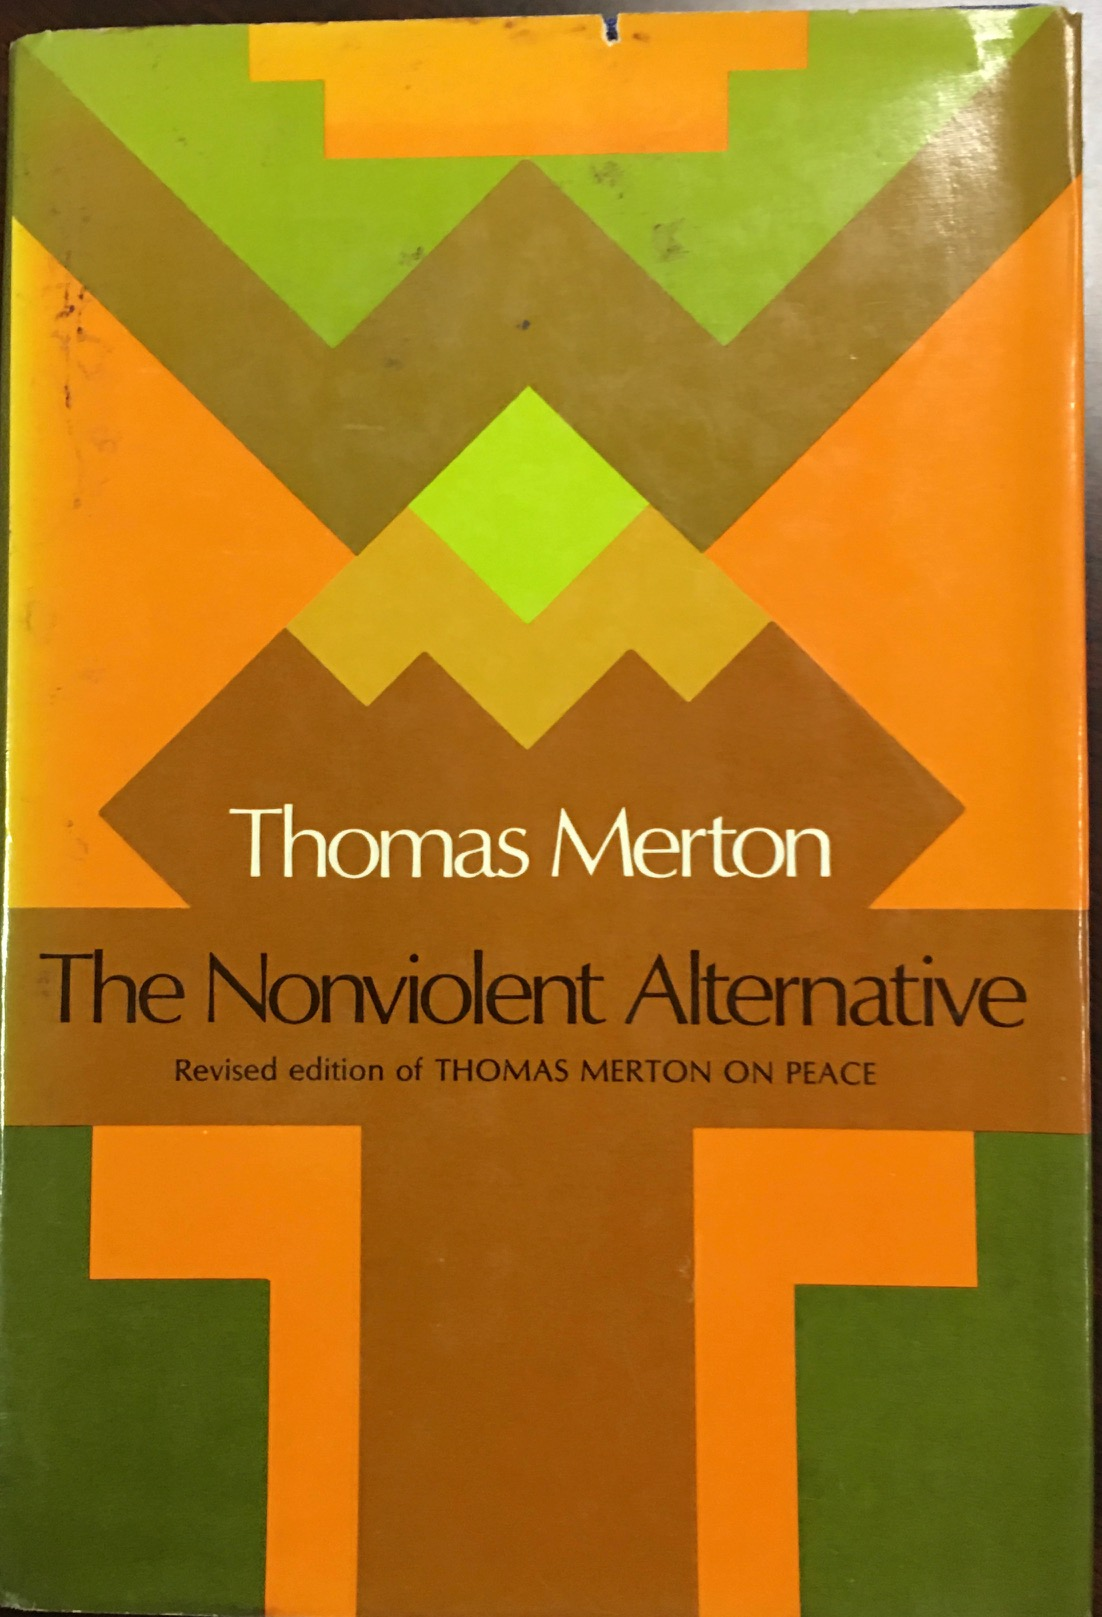 Image for The Nonviolent Alternative - Revised Edition of Thomas Merton On Peace